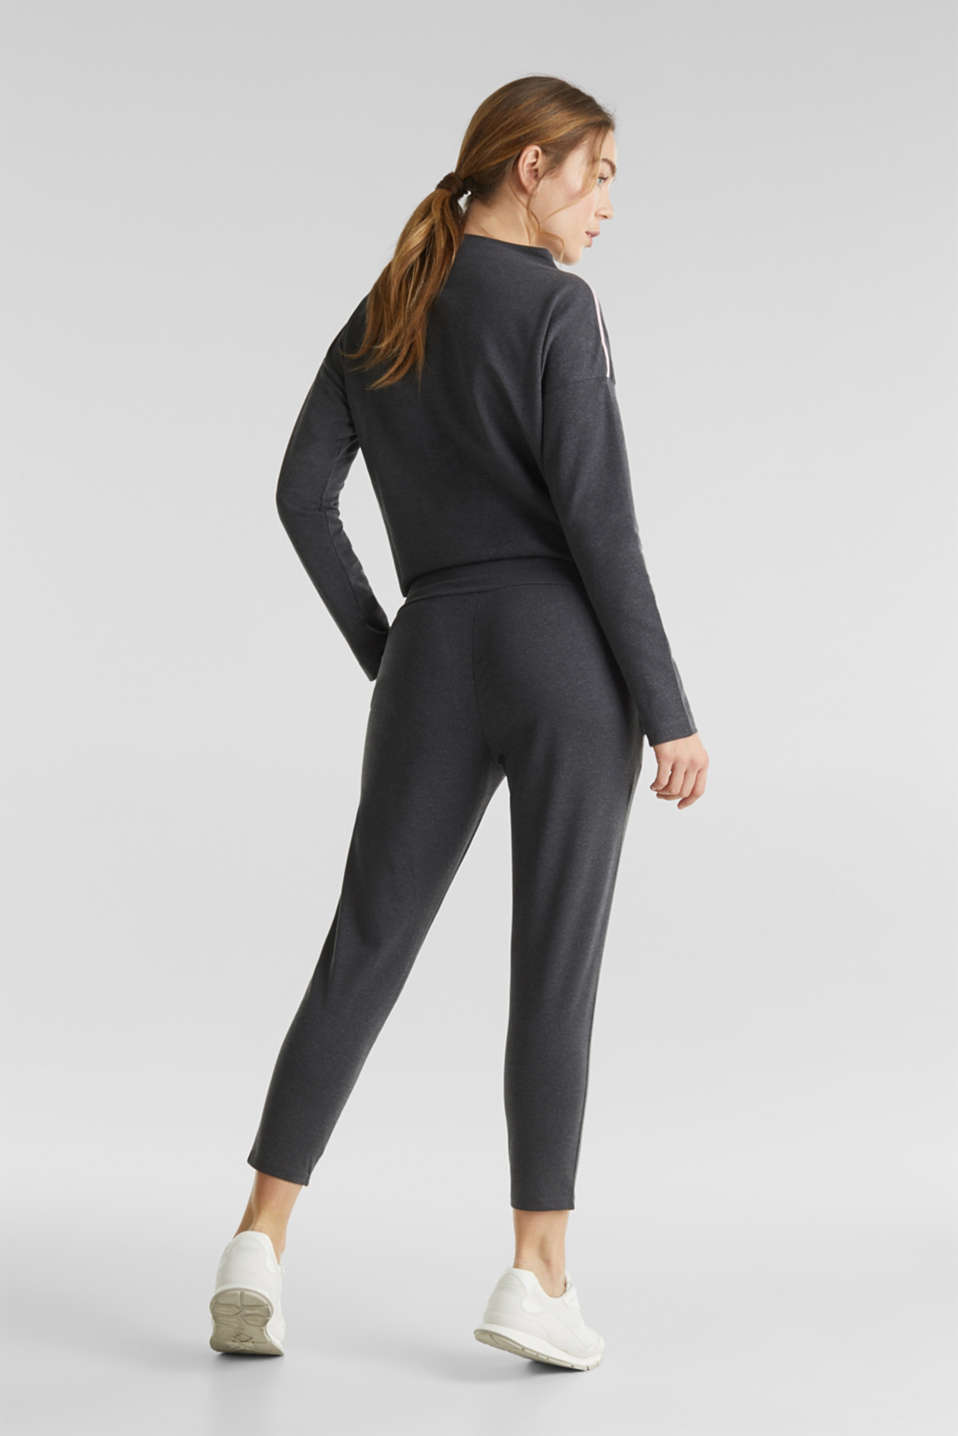 Ankle-length stretch jersey trousers with shiny details, ANTHRACITE 2, detail image number 3